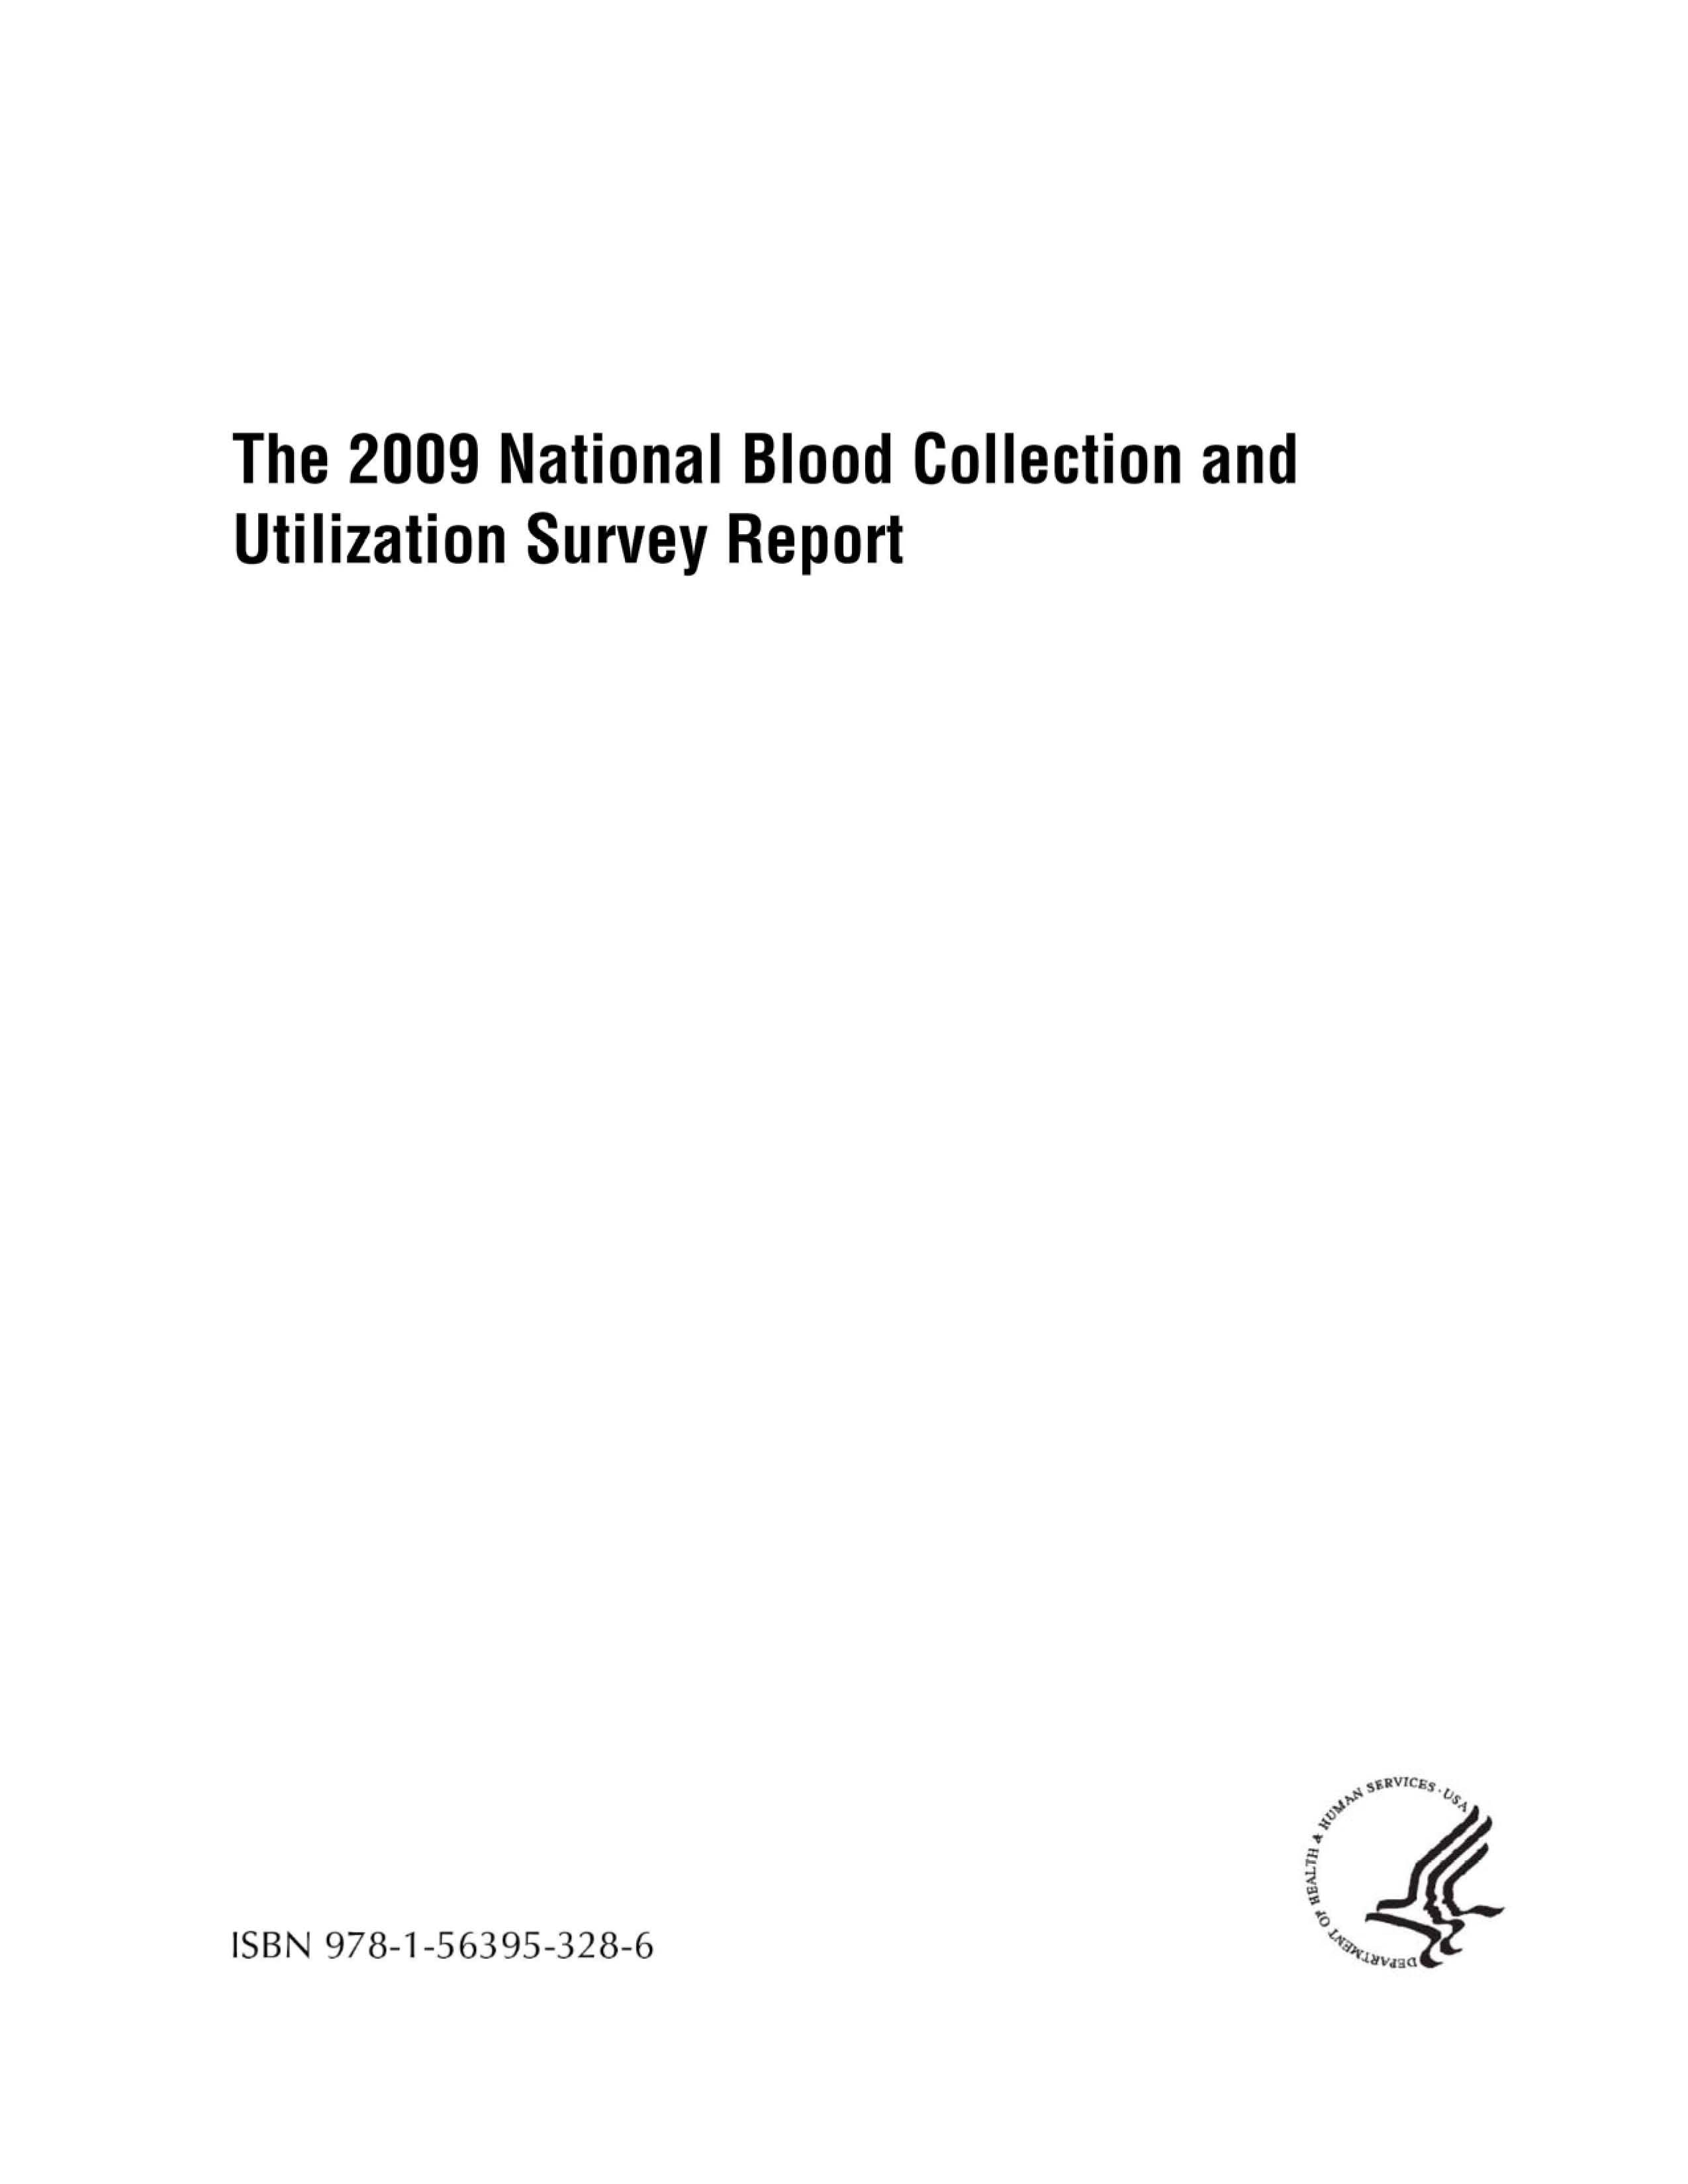 2009 NBCUS Report cover.